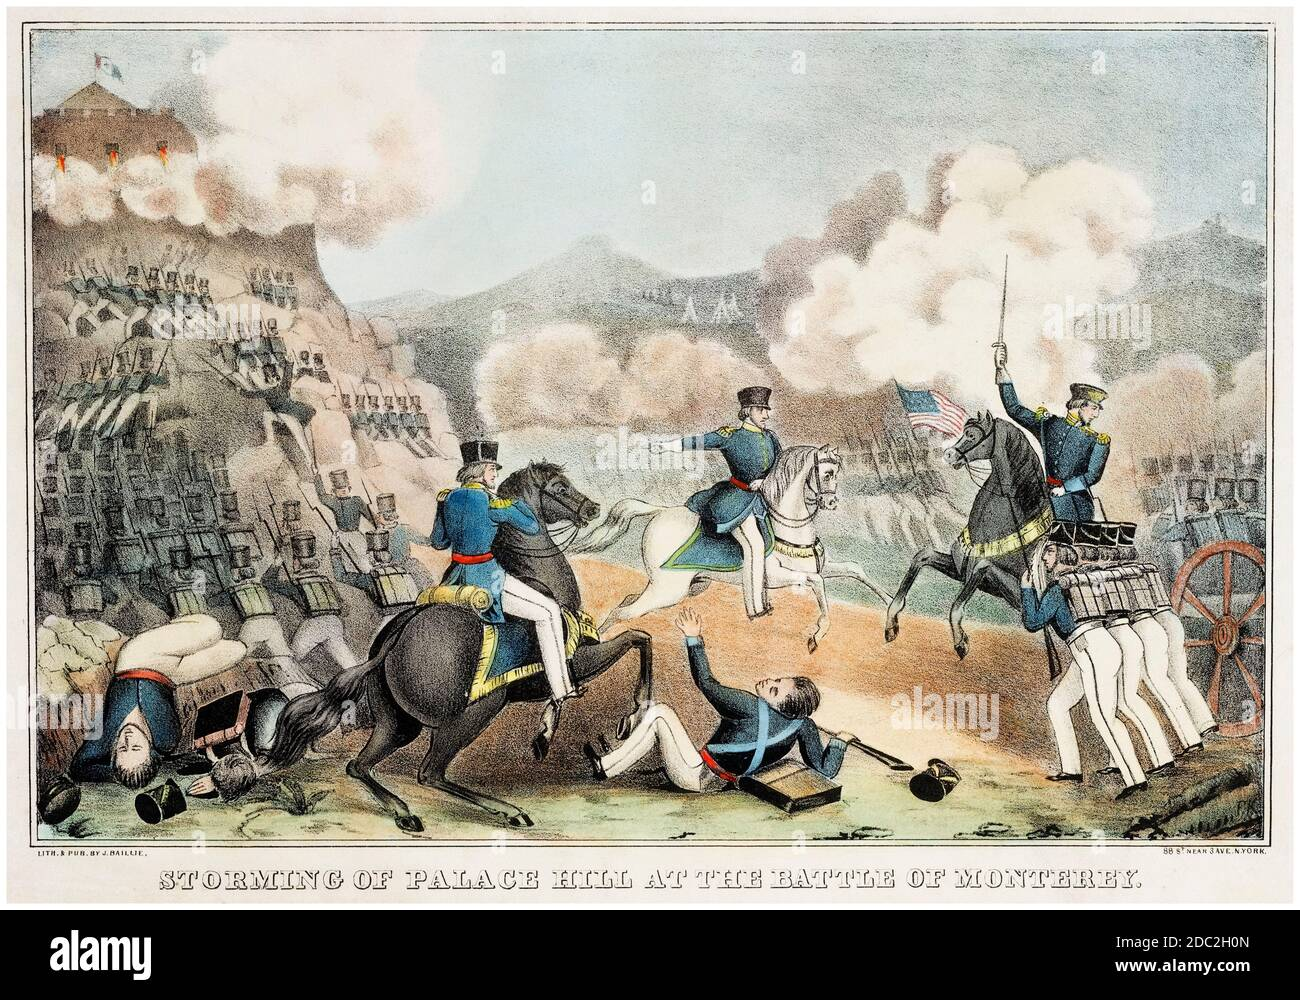 Storming of Palace Hill at the Battle of Monterey, 7th July 1846, during the Mexican–American War (1846-1848), print by James Baillie, before 1899 Stock Photo